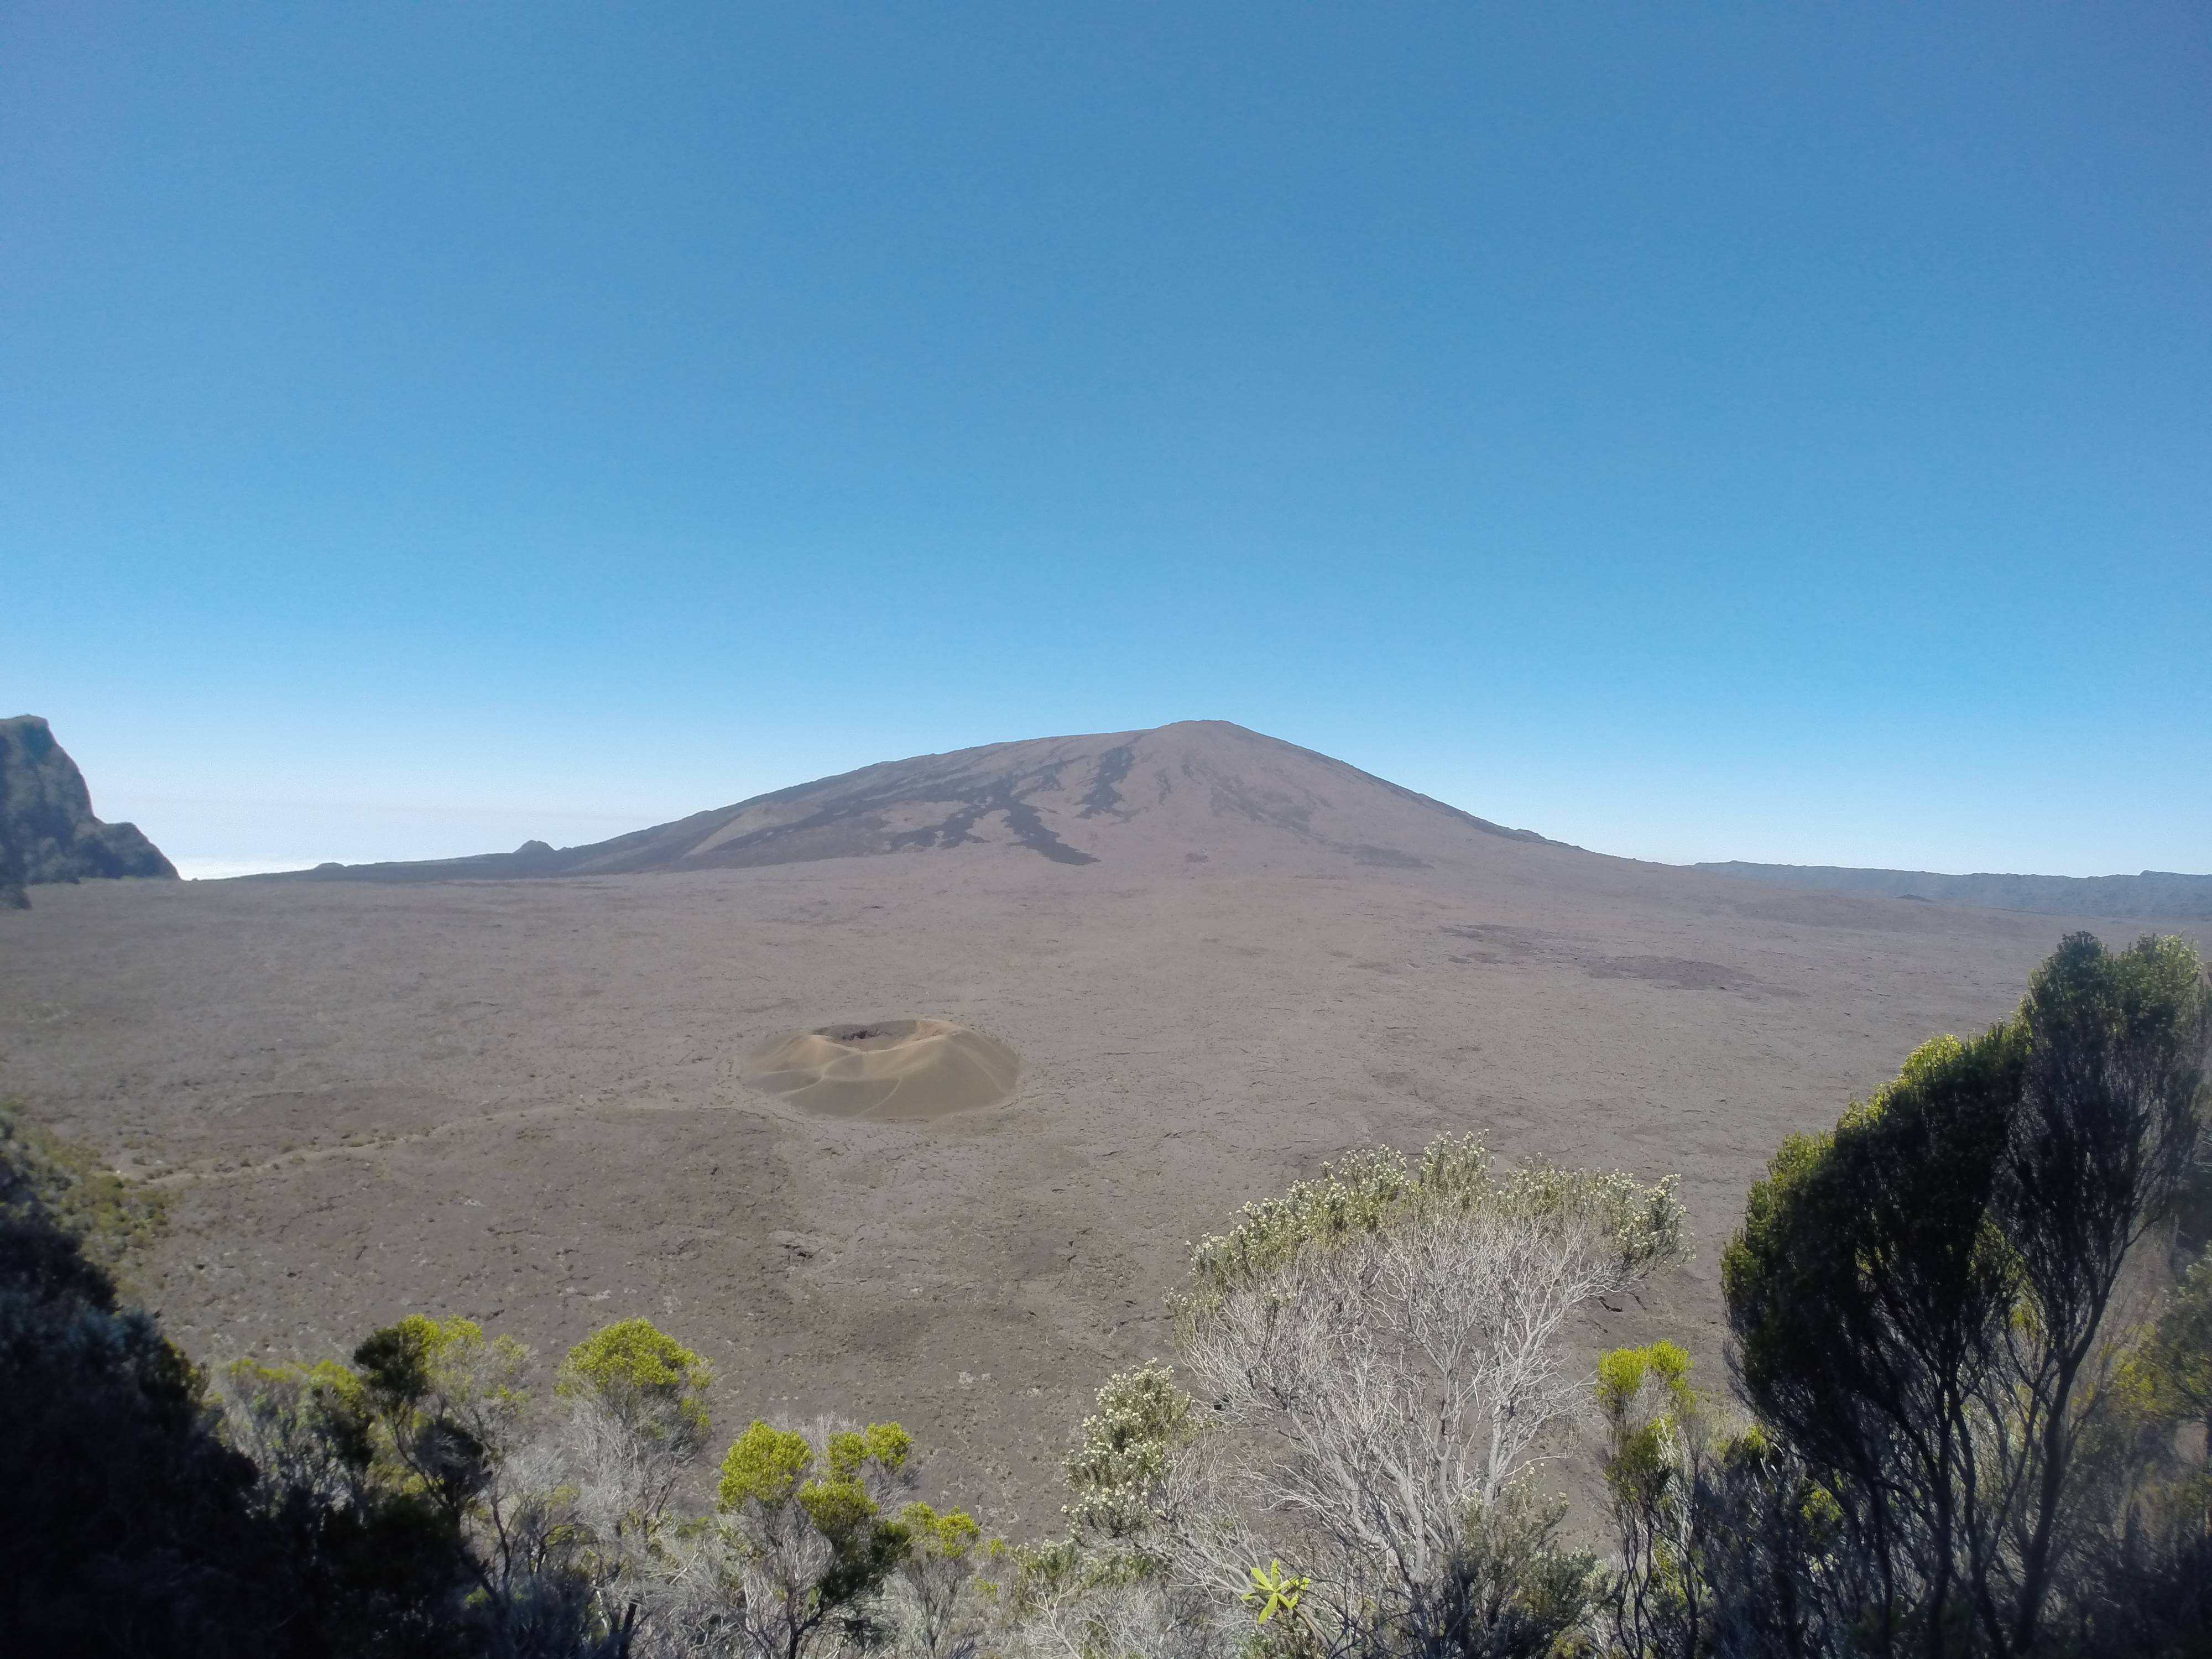 Photo 2: Le Piton de la Fournaise : la star de la Réunion !